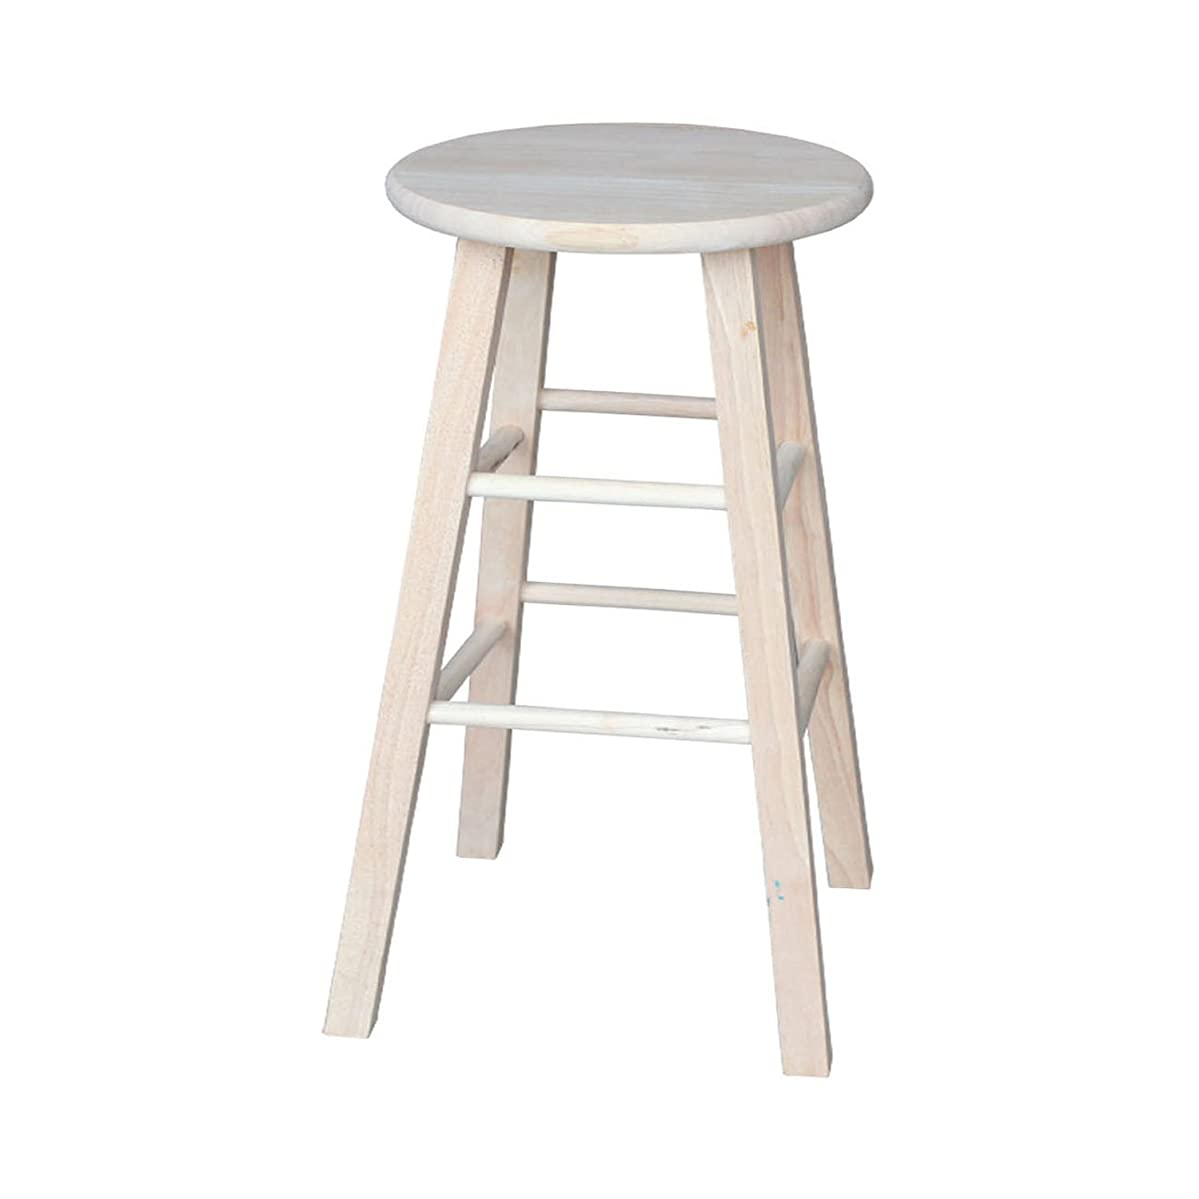 International Concepts 1S-530 30-Inch Round Top Stool, Unfinished